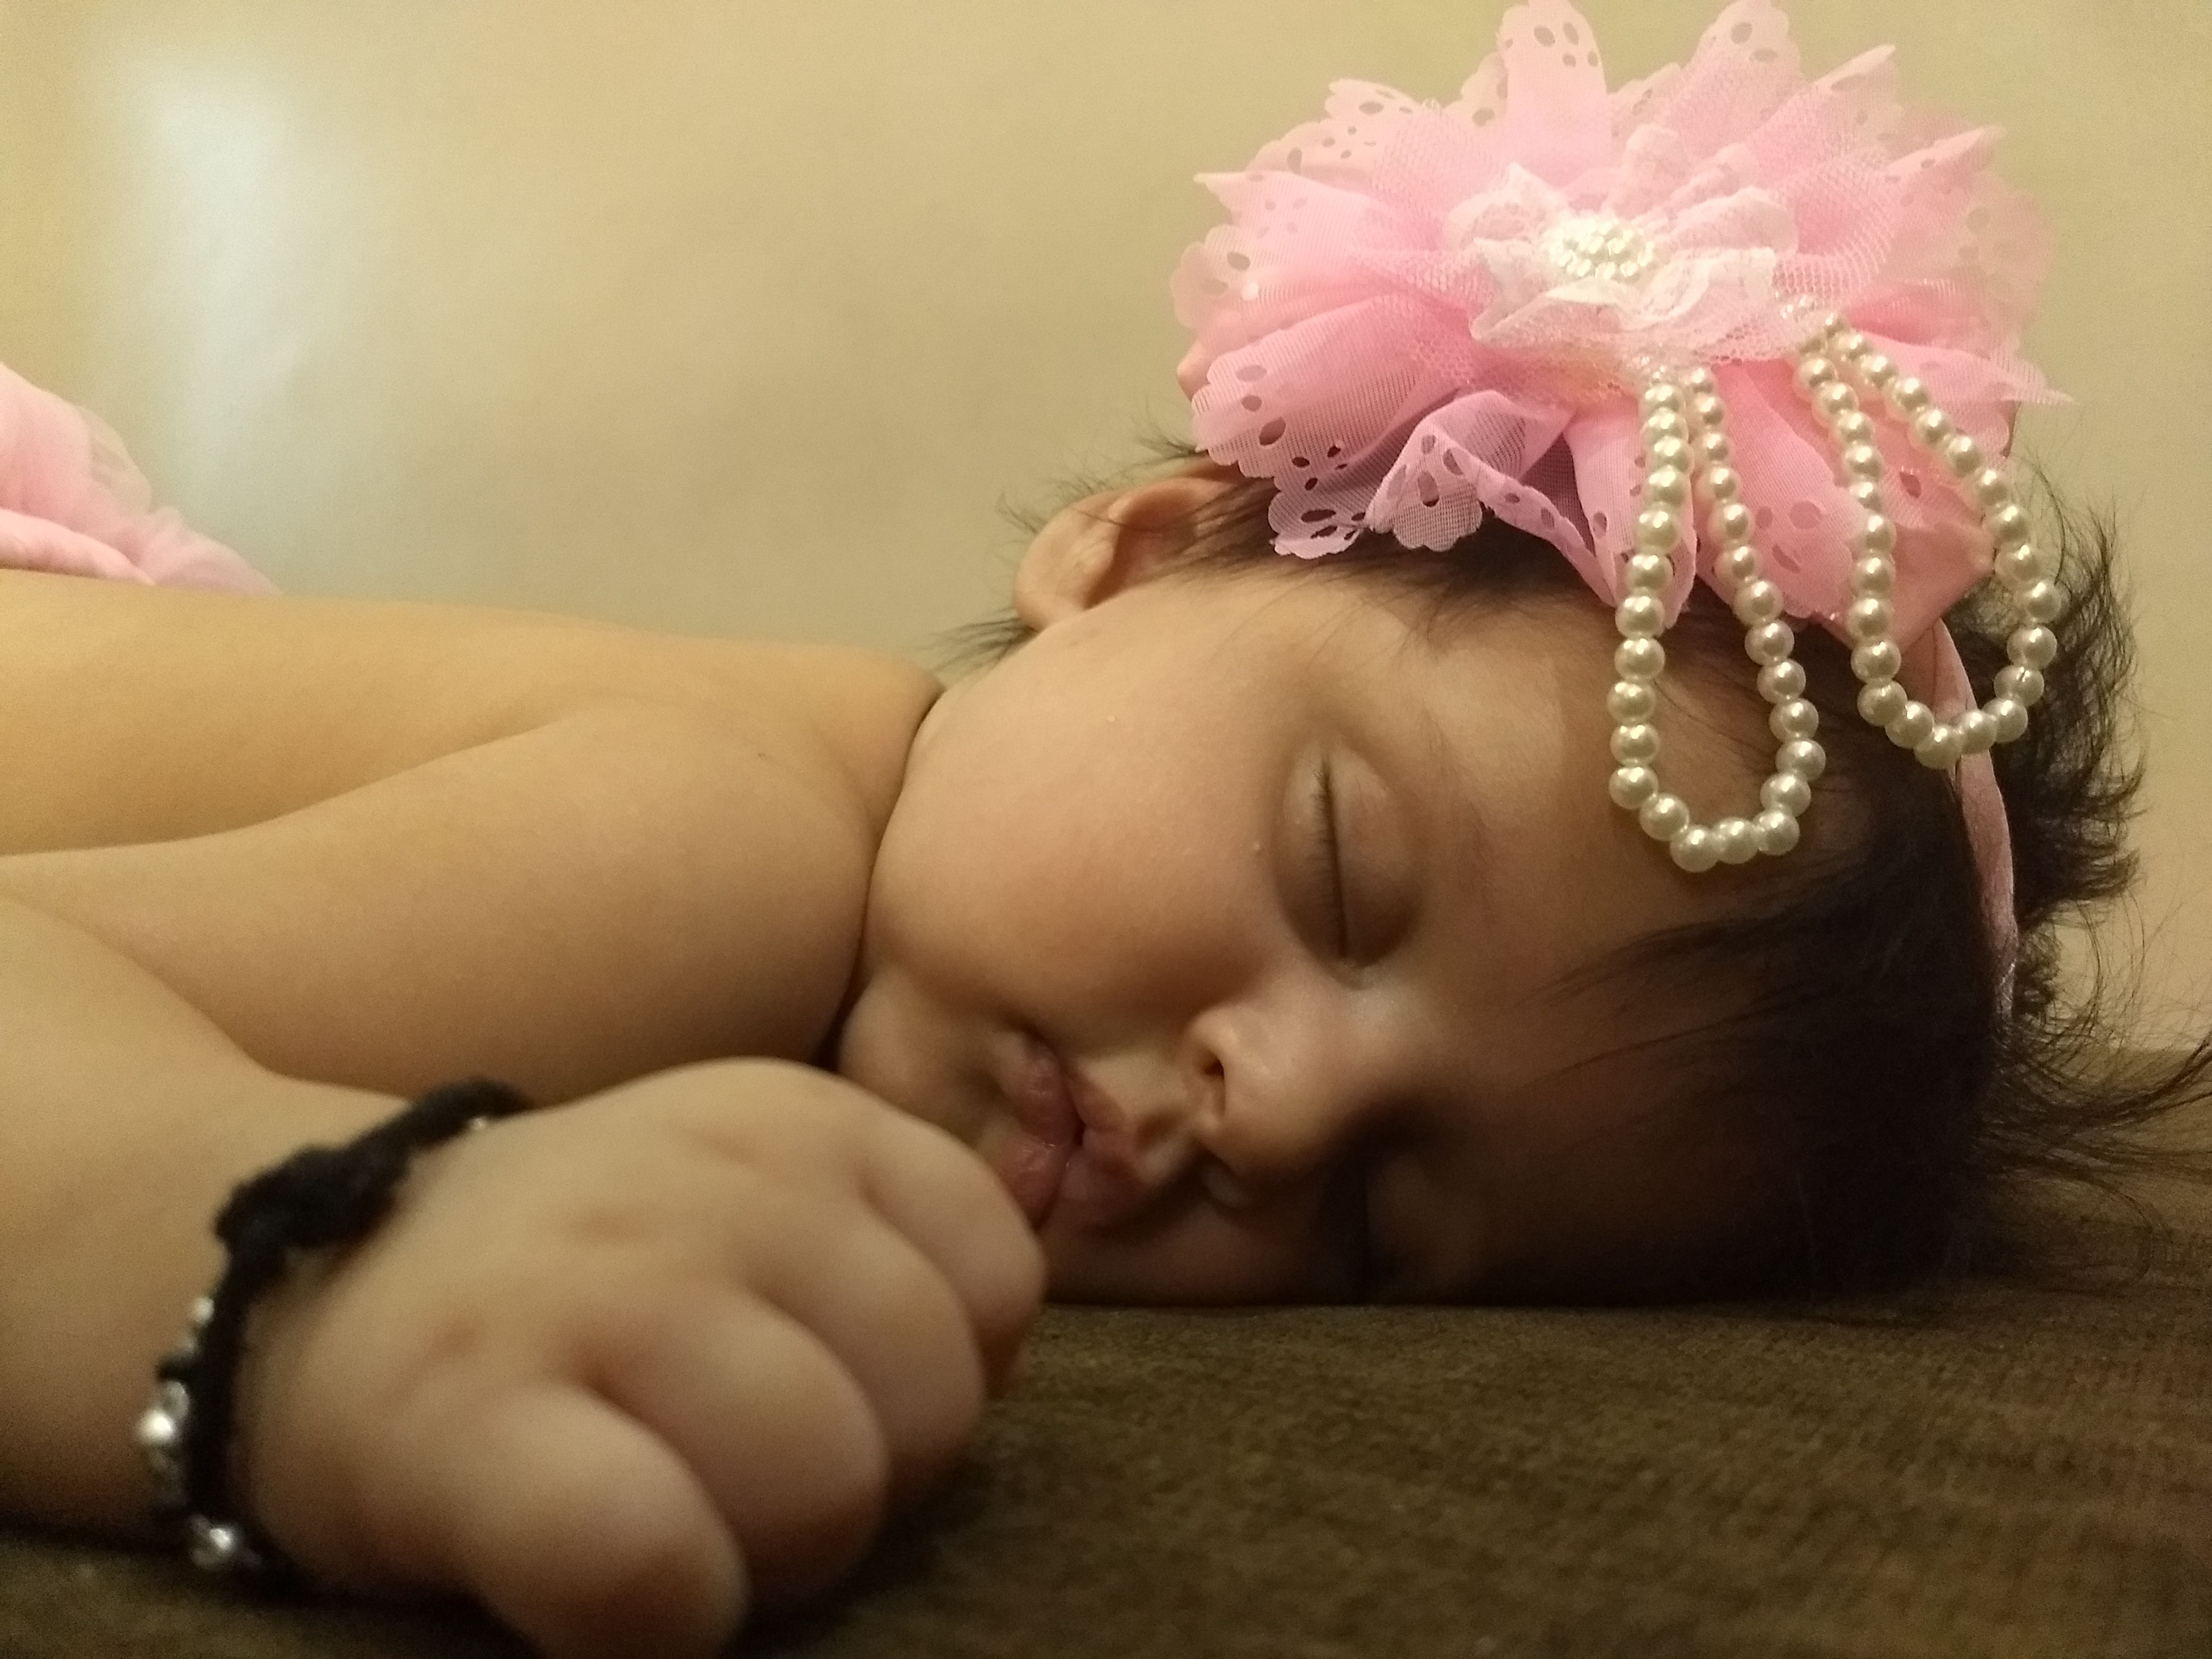 innocence, indoors, baby, home interior, close-up, babyhood, one person, people, babies only, day, adult